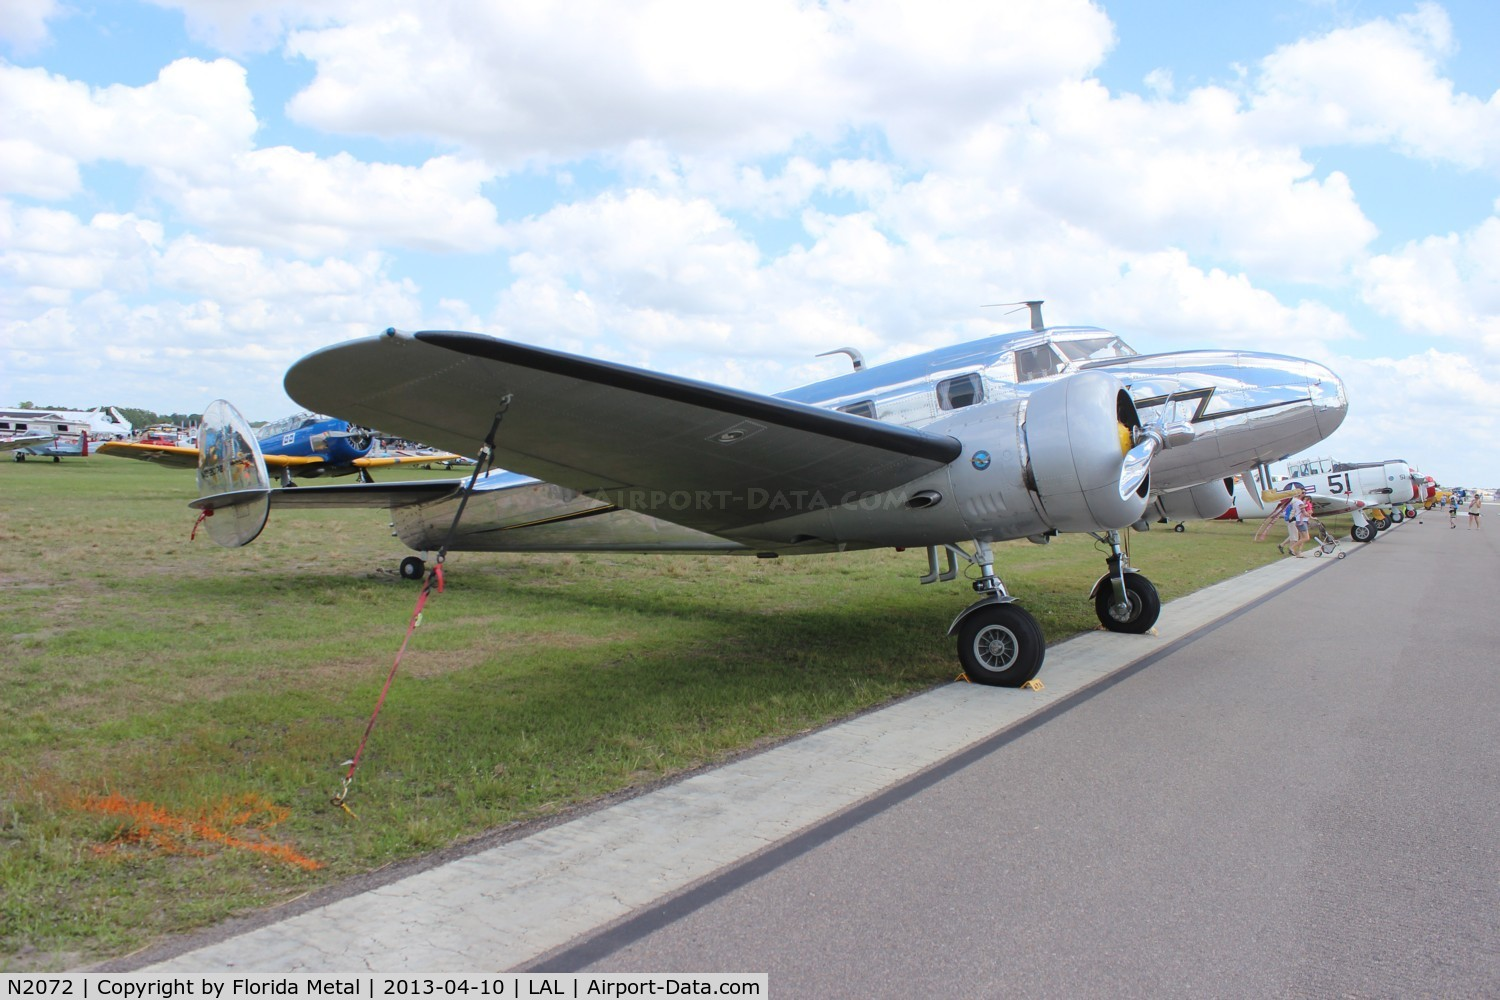 N2072, 1936 Lockheed 12A Electra Junior C/N 1208, Lockheed 12A Electra Jr